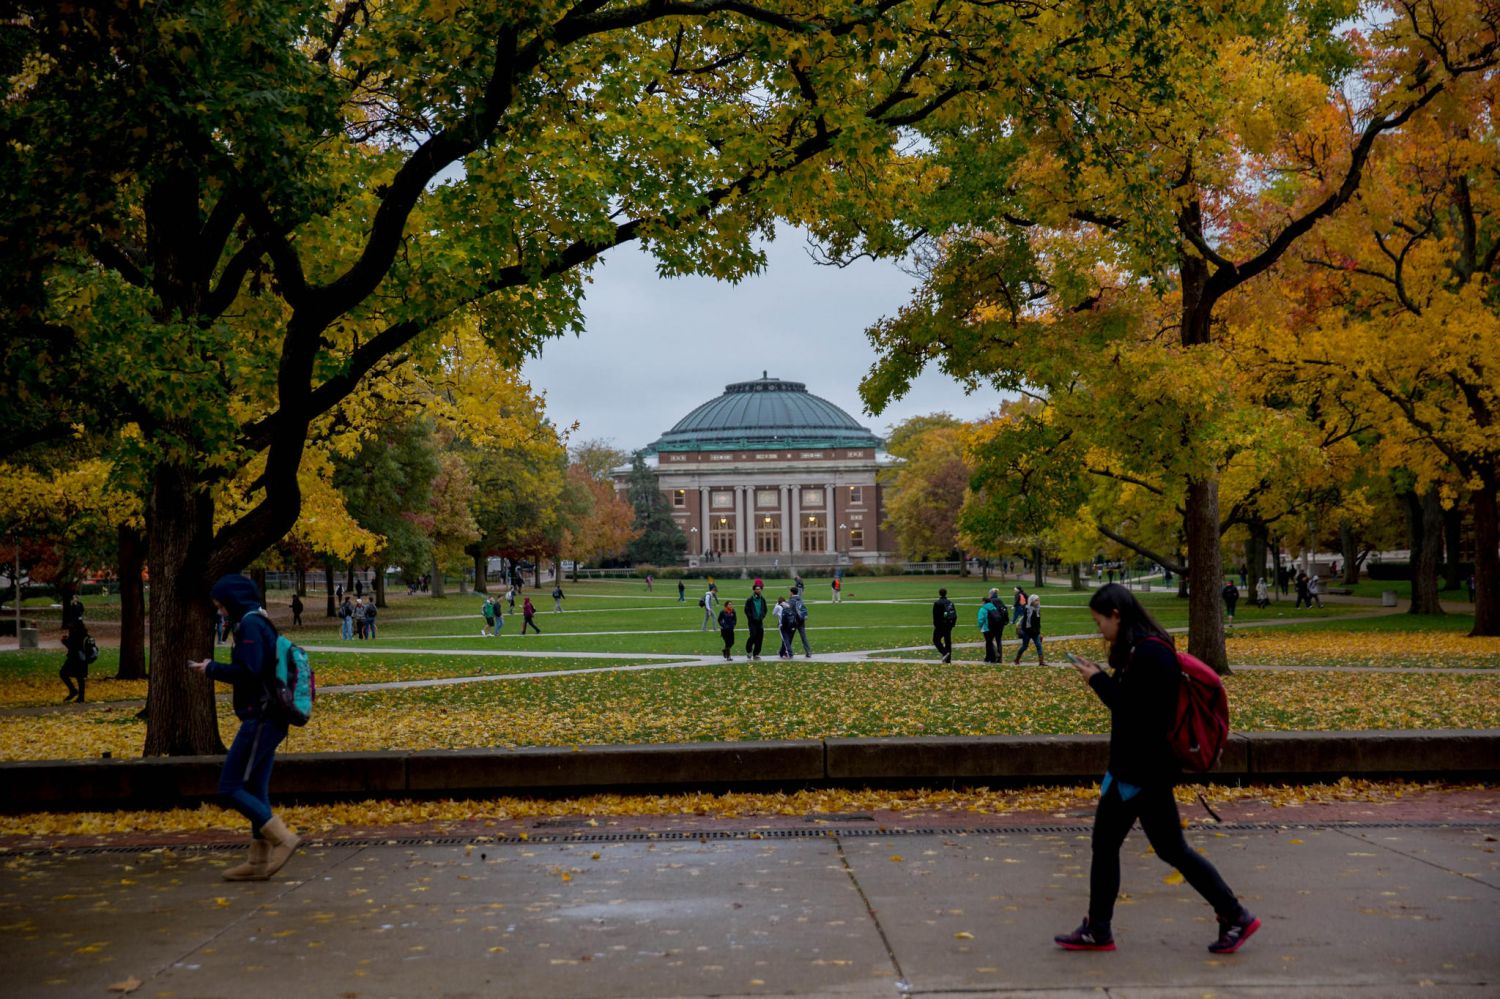 University of Illinois Urbana Champaign Ranking